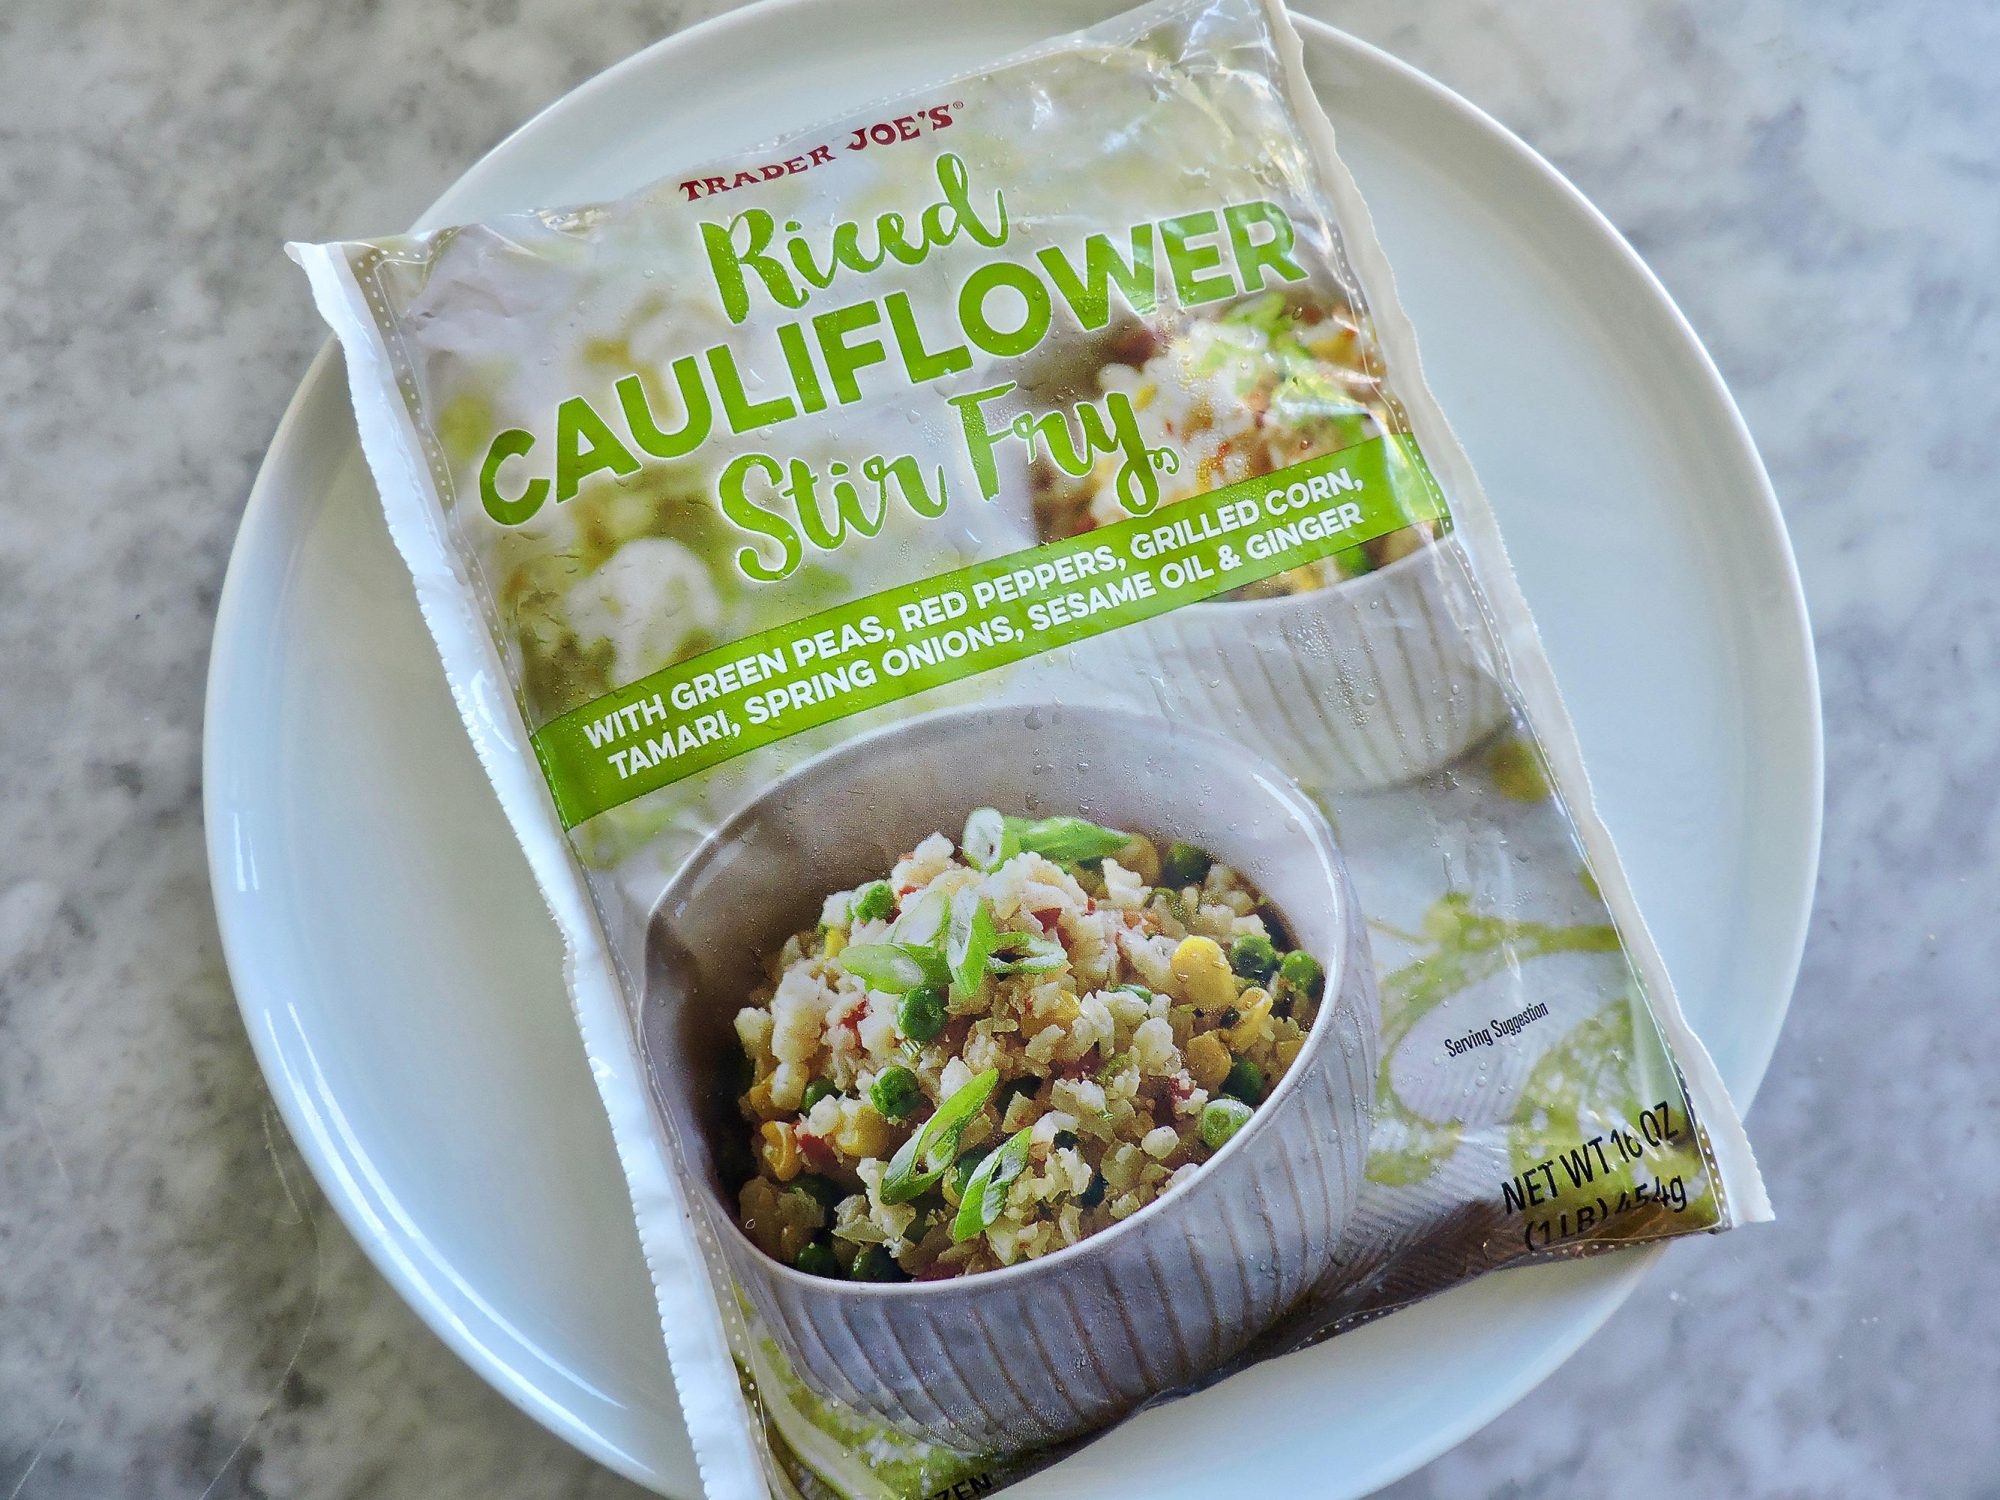 15 Nutritionist-Approved Trader Joe's Foods for $5 or Less 1804w-Riced-Cauliflower-Stir-Fry